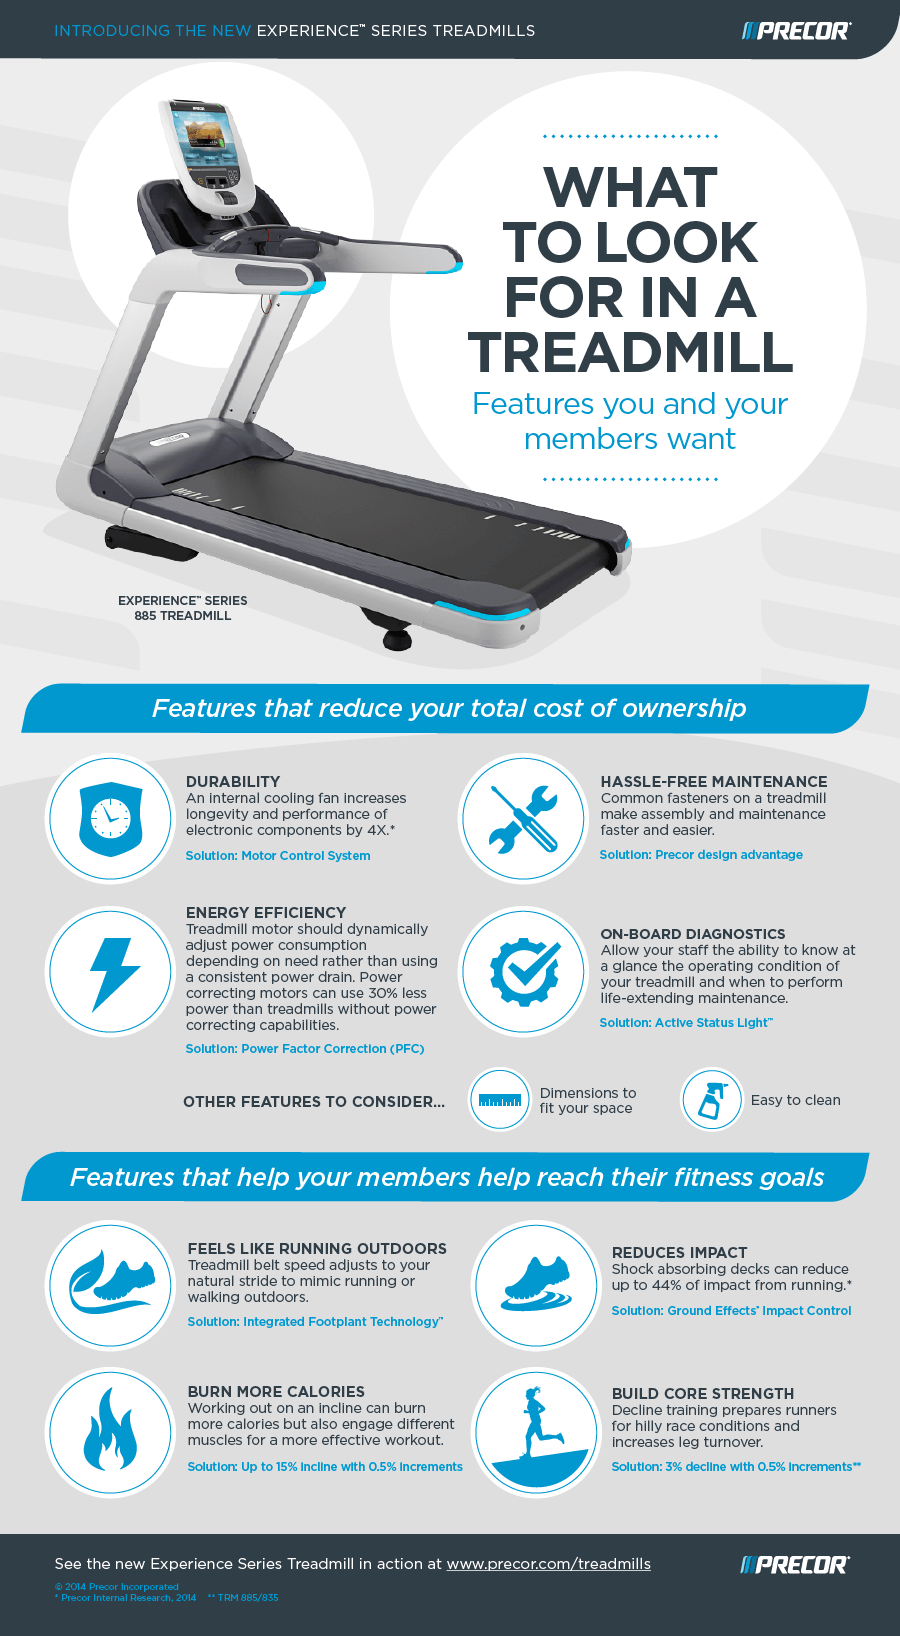 Infographic Precor What to Look for in a Treadmill